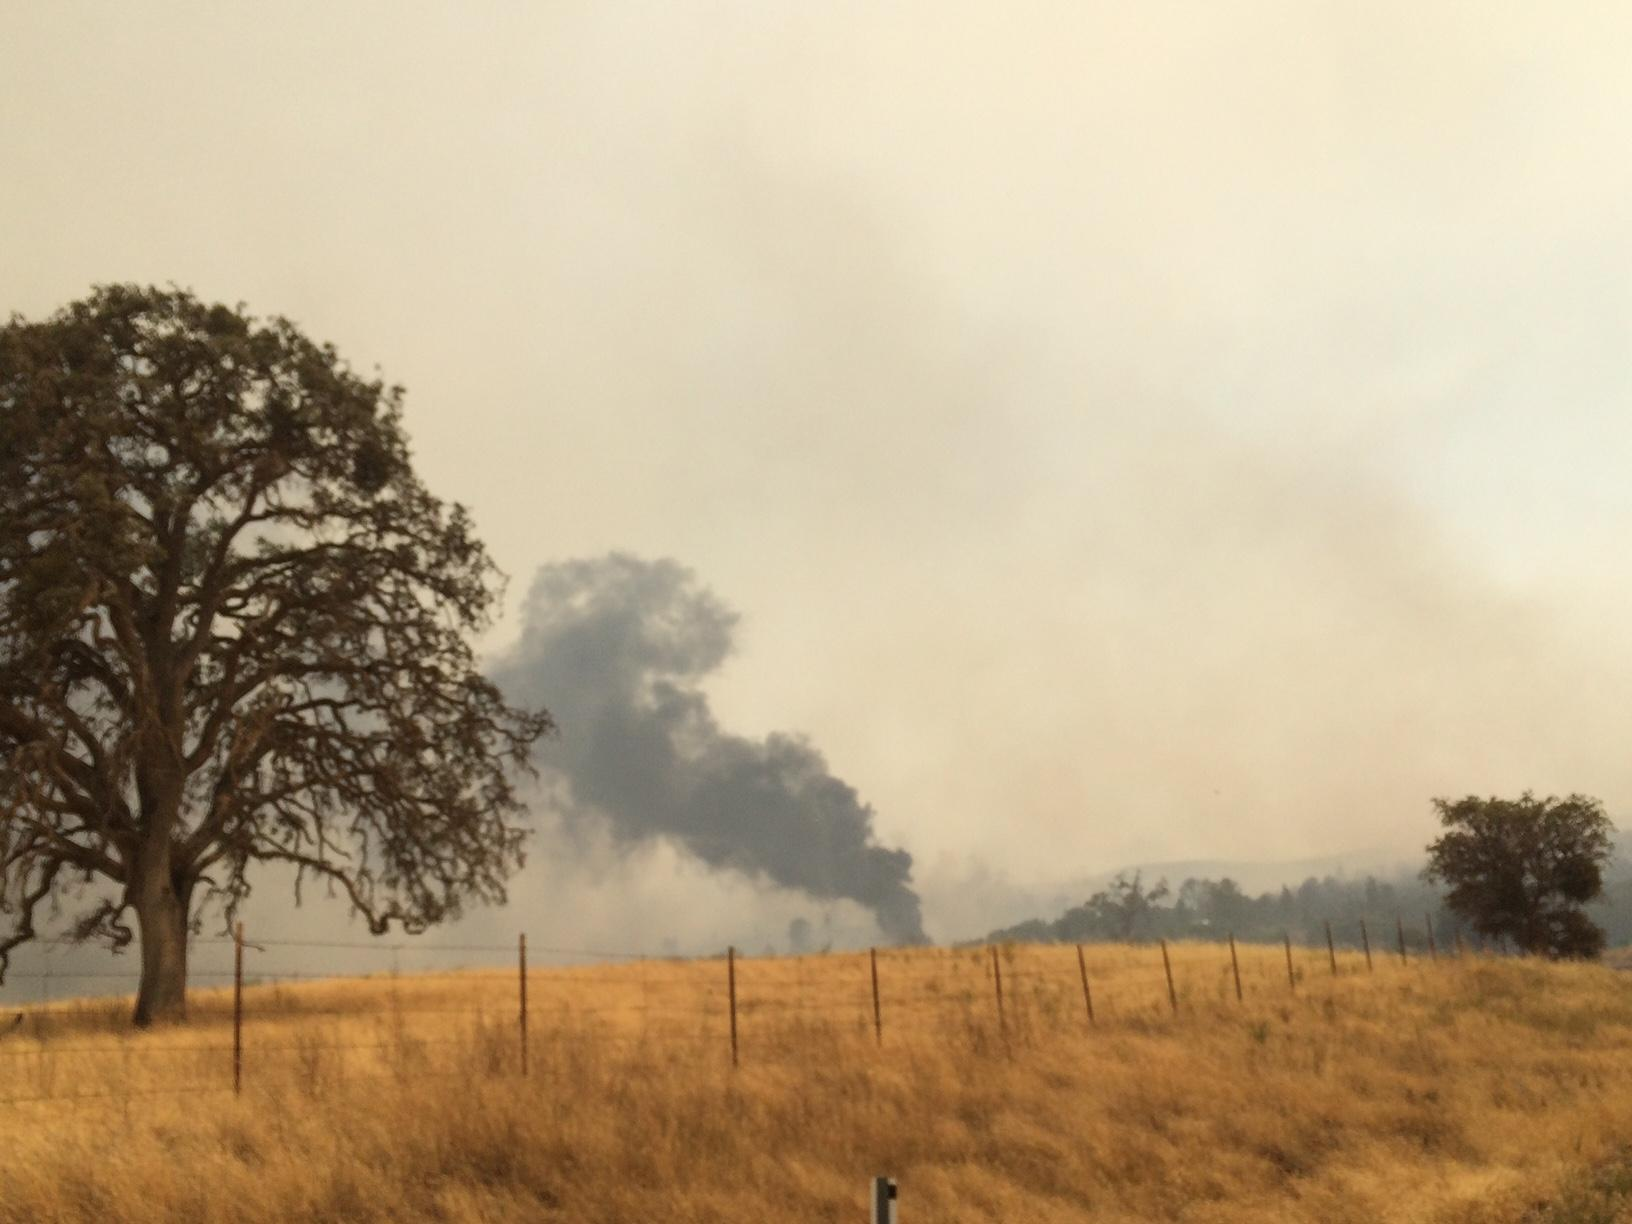 Evacuation of Mariposa ordered due to Detwiler Fire